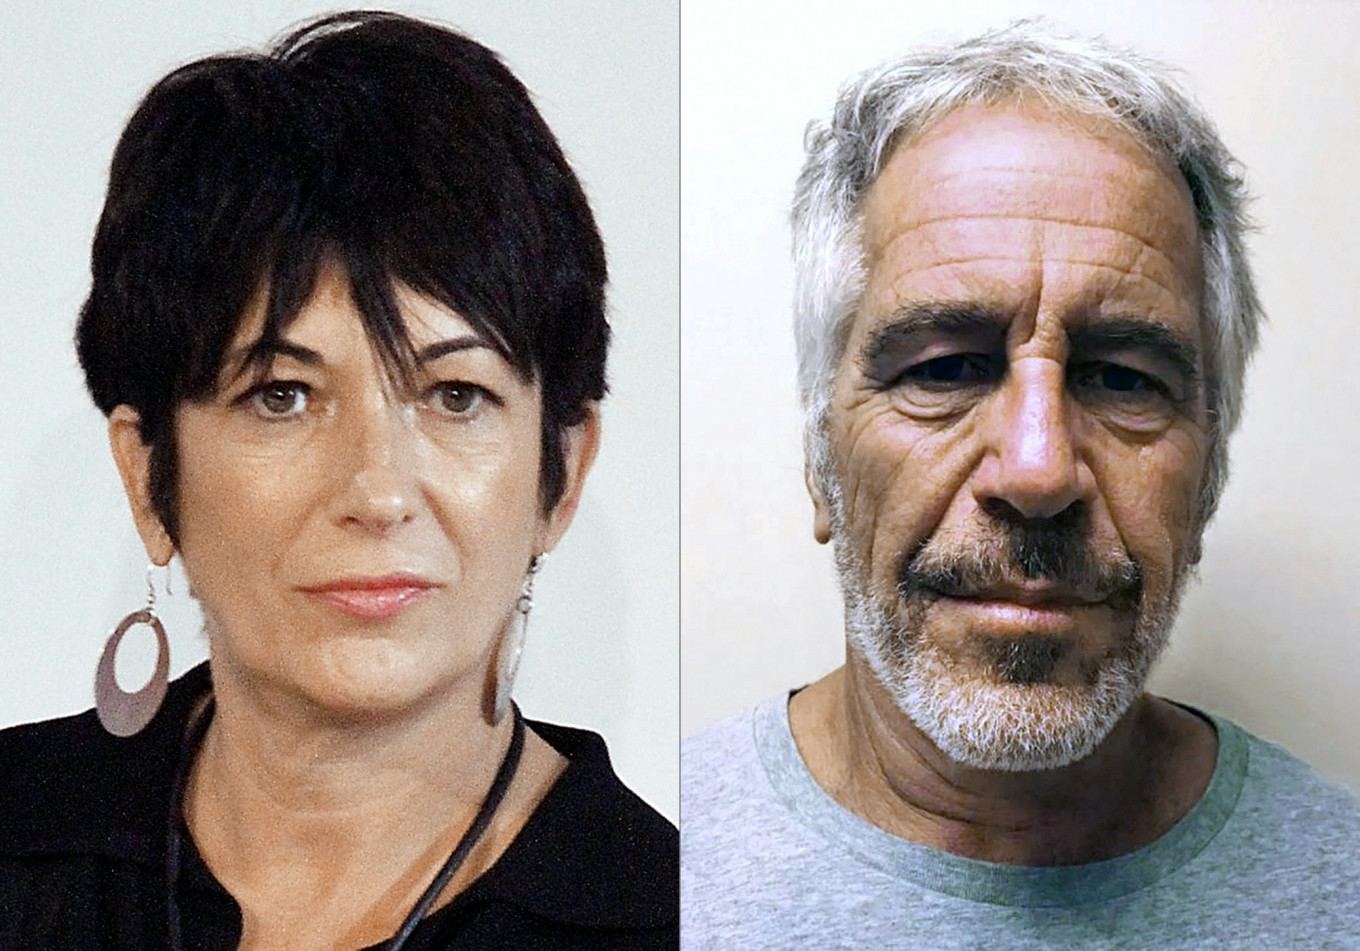 Ghislaine Maxwell documents are released, including Jeffrey Epstein emails